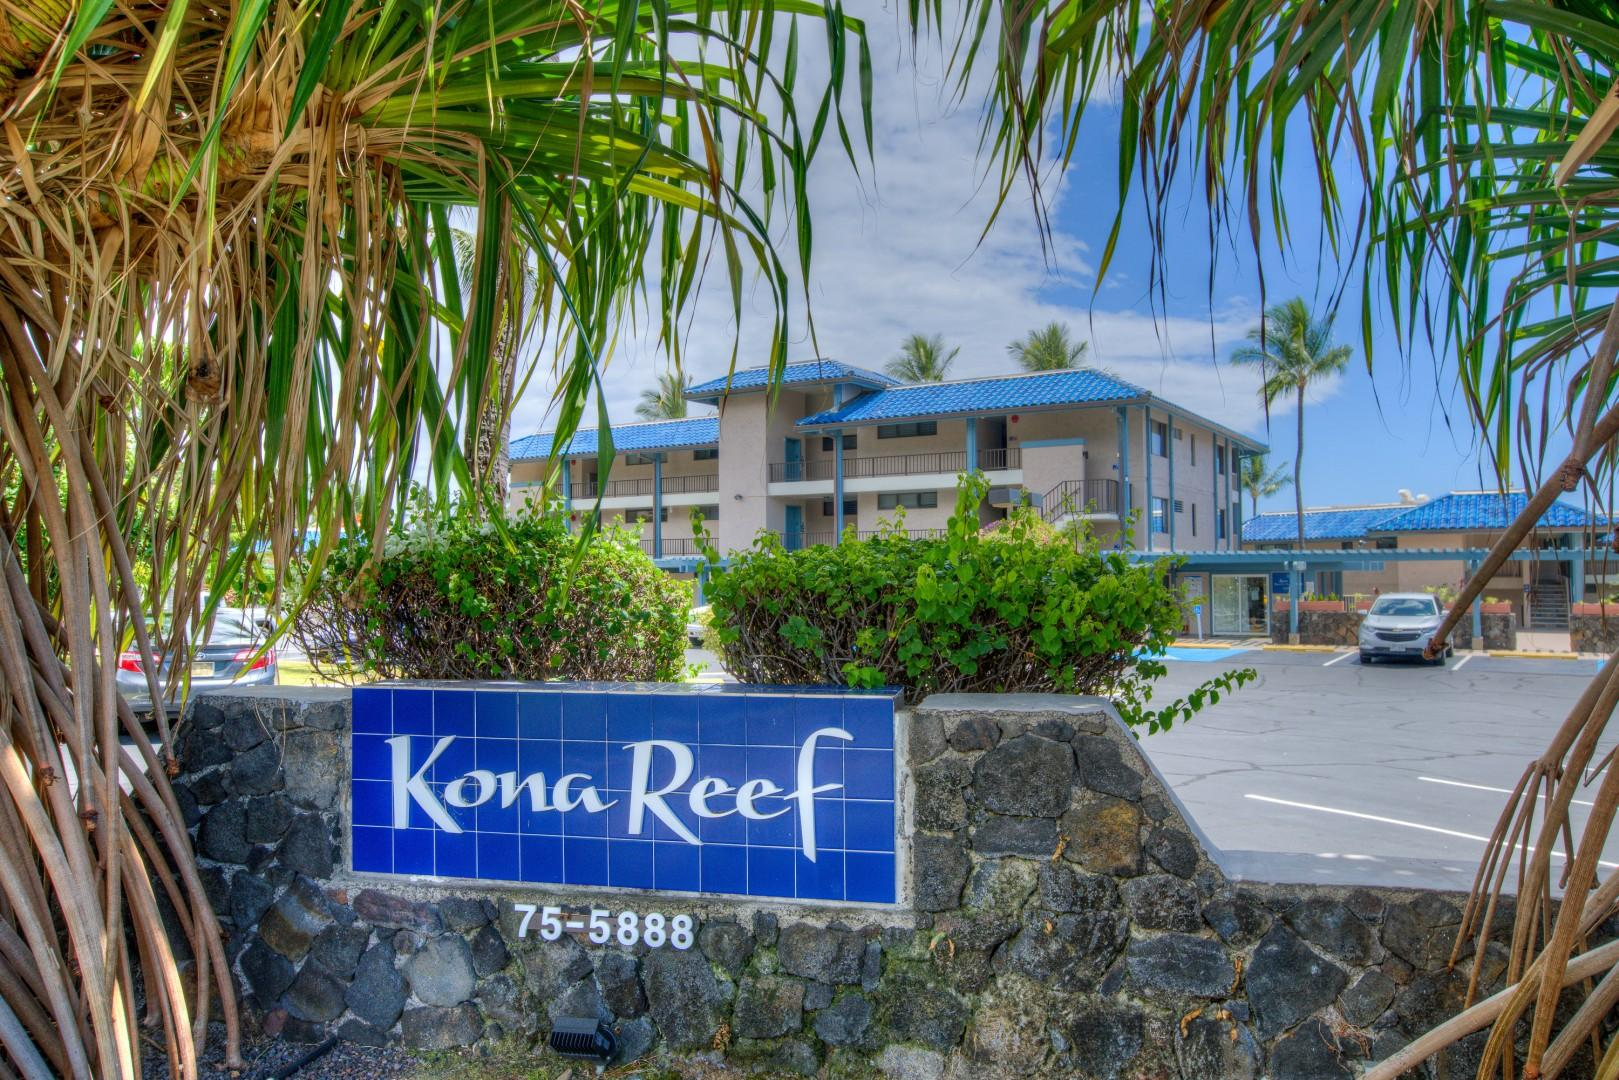 KONA REEF- Oceanfront Complex within Walking Distance of Town.